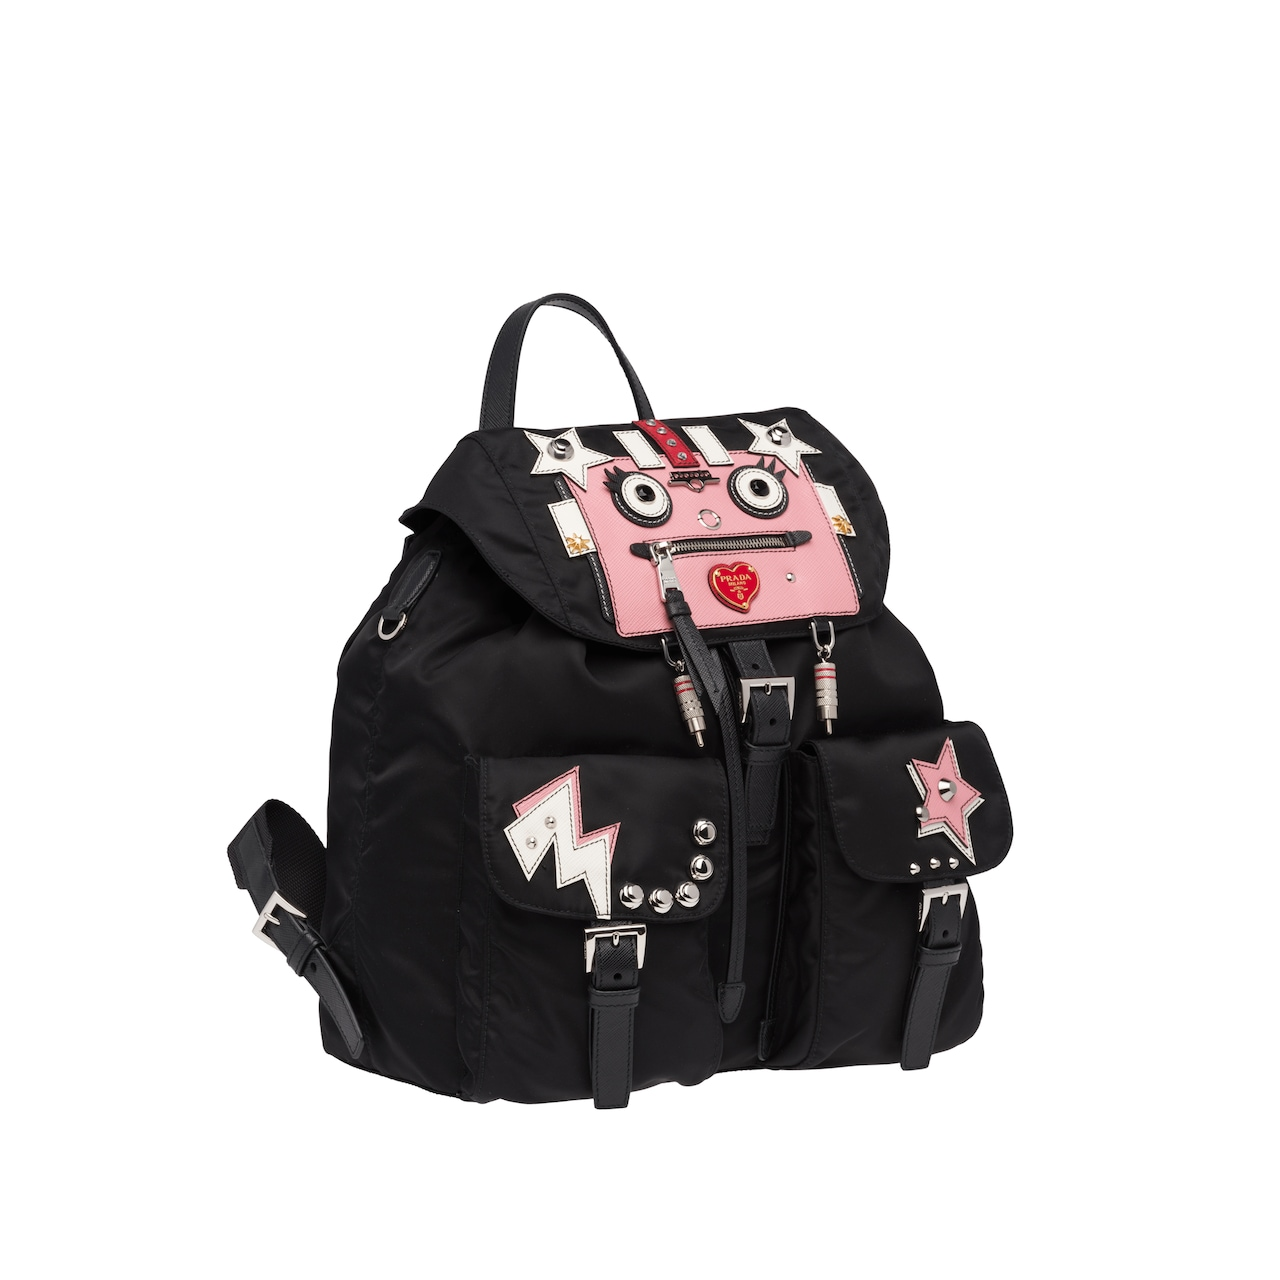 Leather and fabric backpack with Robot